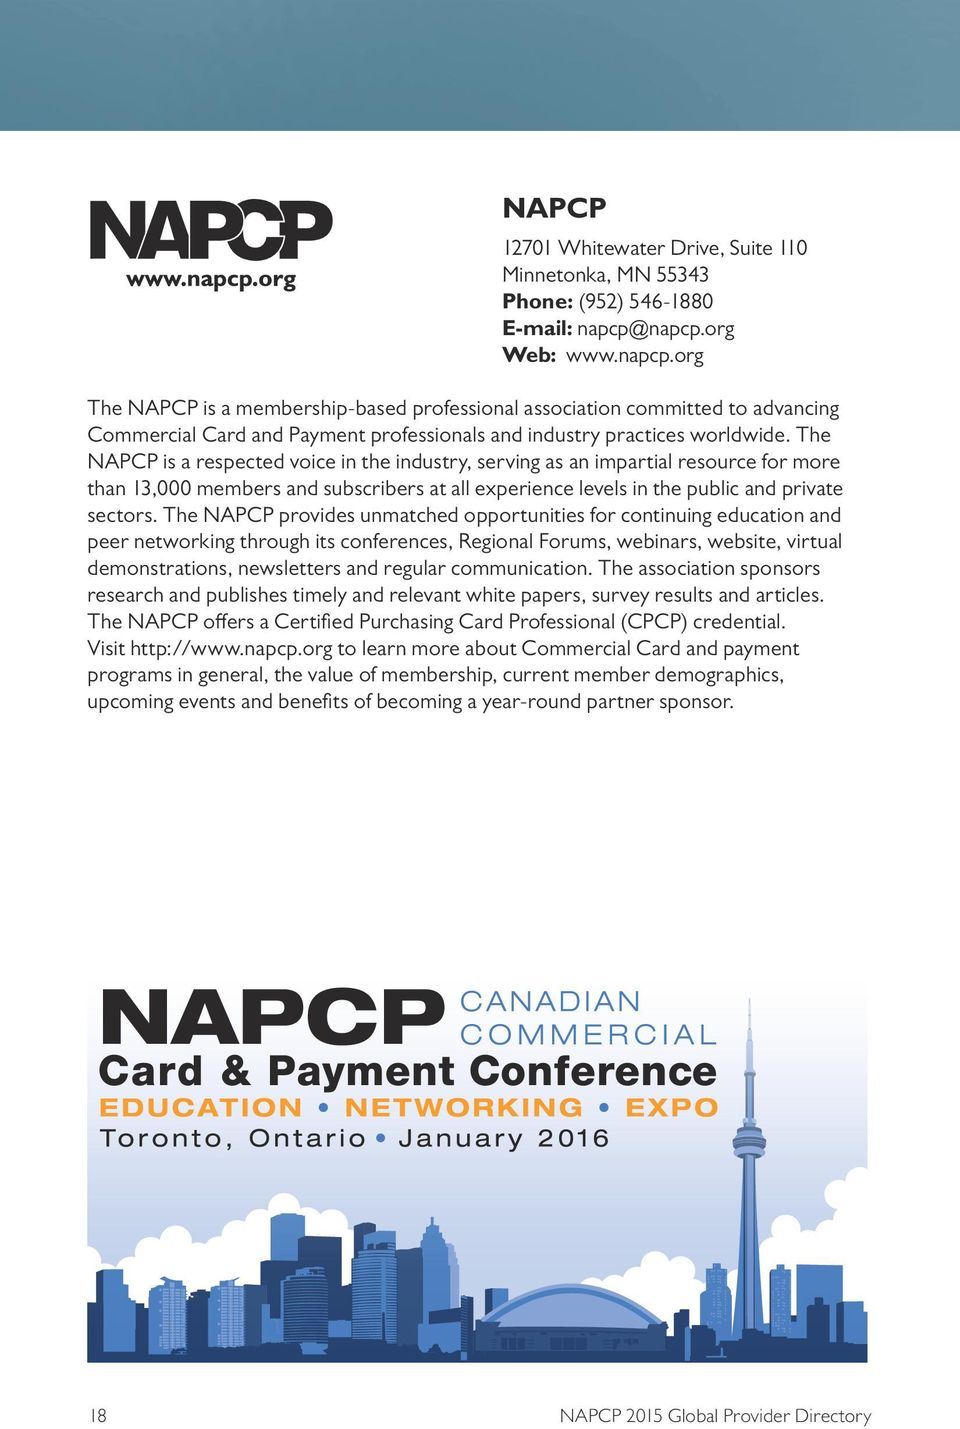 The NAPCP is a respected voice in the industry, serving as an impartial resource for more than 13,000 members and subscribers at all experience levels in the public and private sectors.